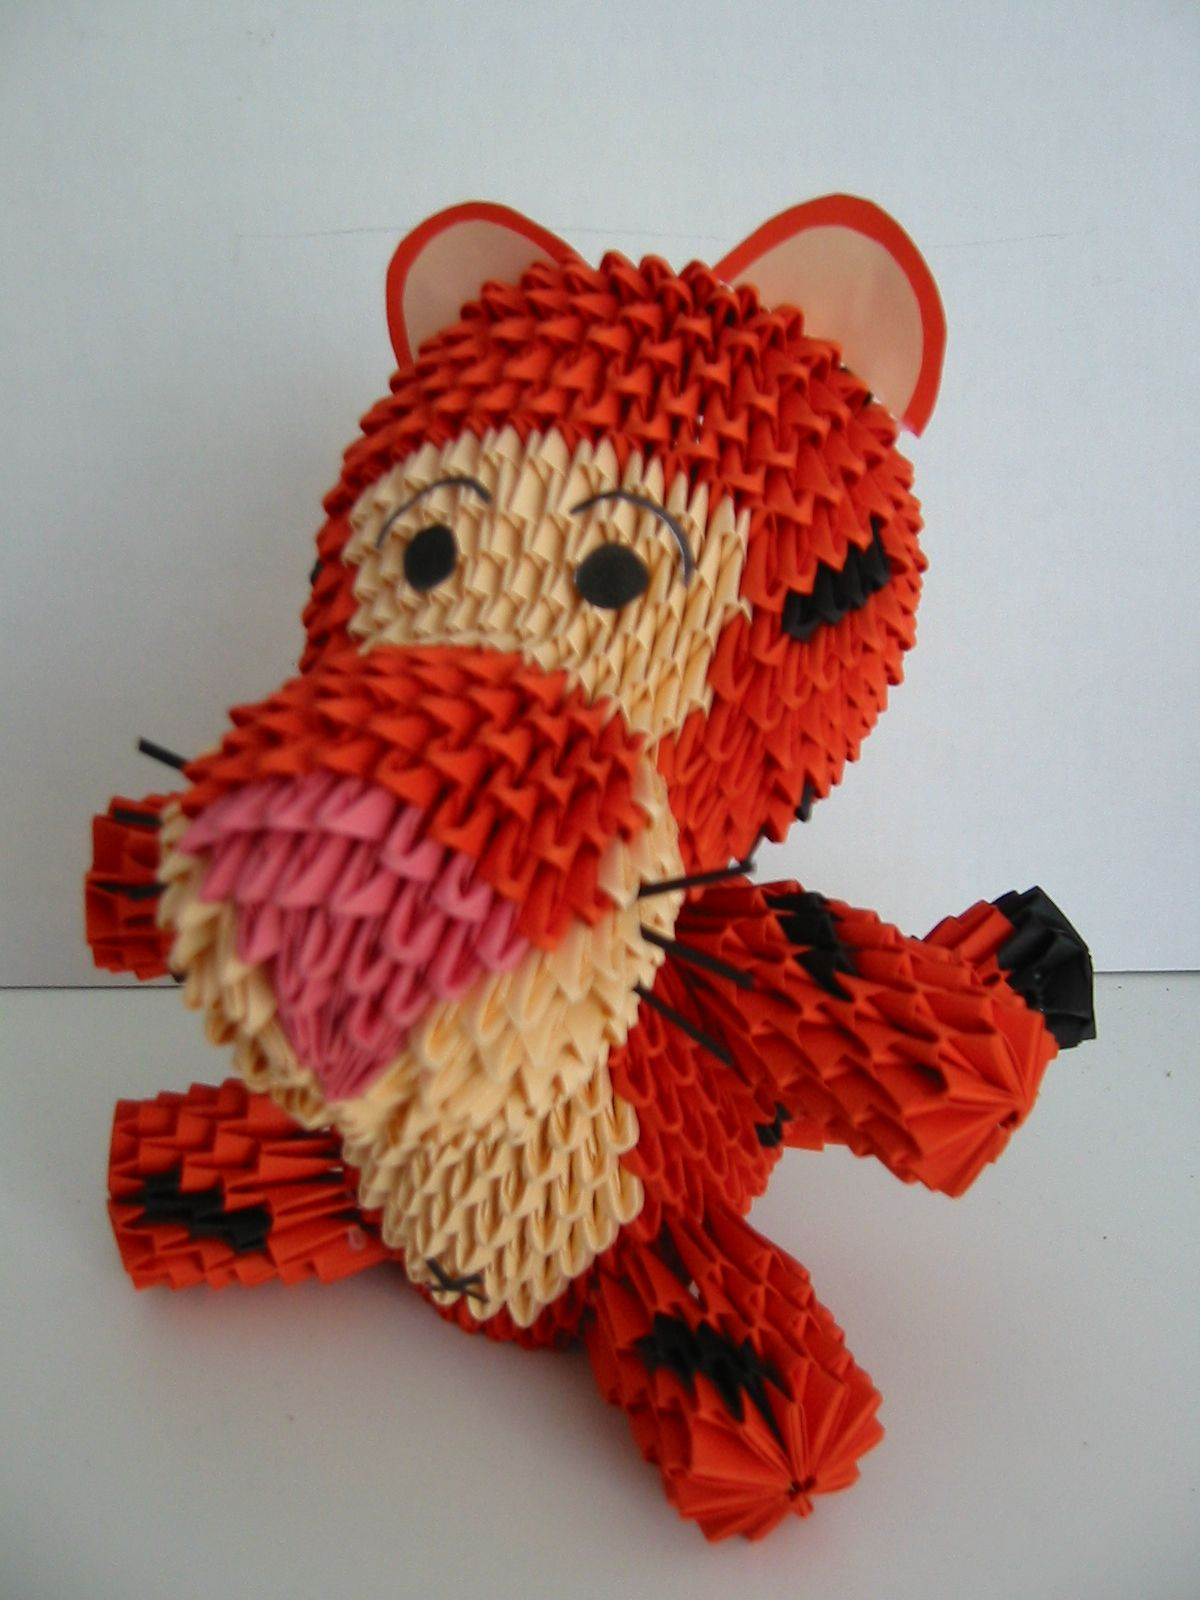 Ashna S Blog 3d Paper Origami Really Cute I Love Tigger And This Is A Great 3d Paper Origami Art Origami Crafts